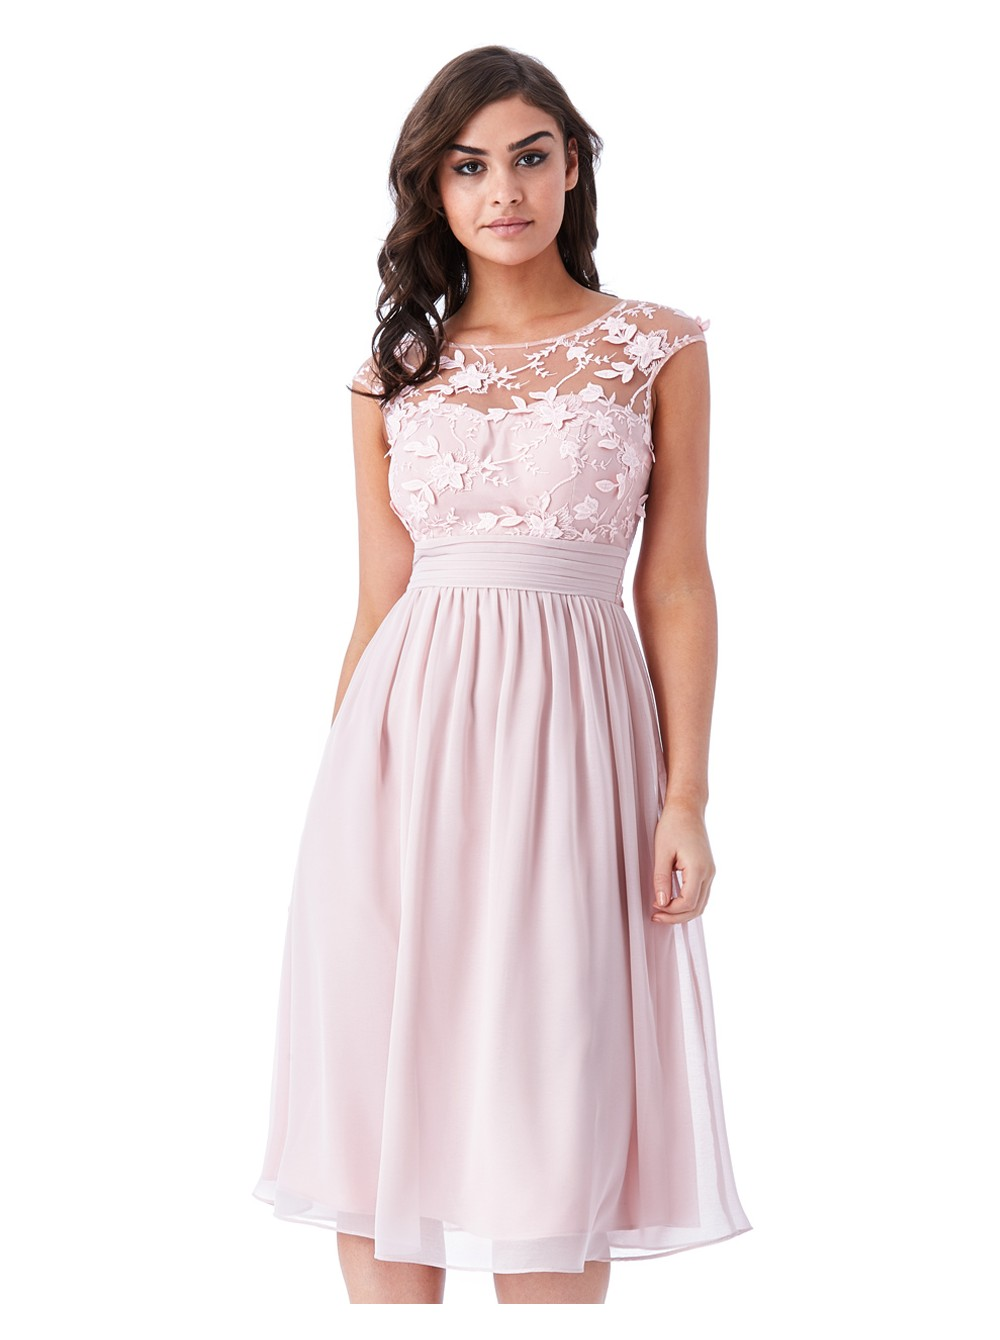 f7026330229d Lily rose light pink chiffon skater midi dress with floral applique mesh  detail. Loading zoom